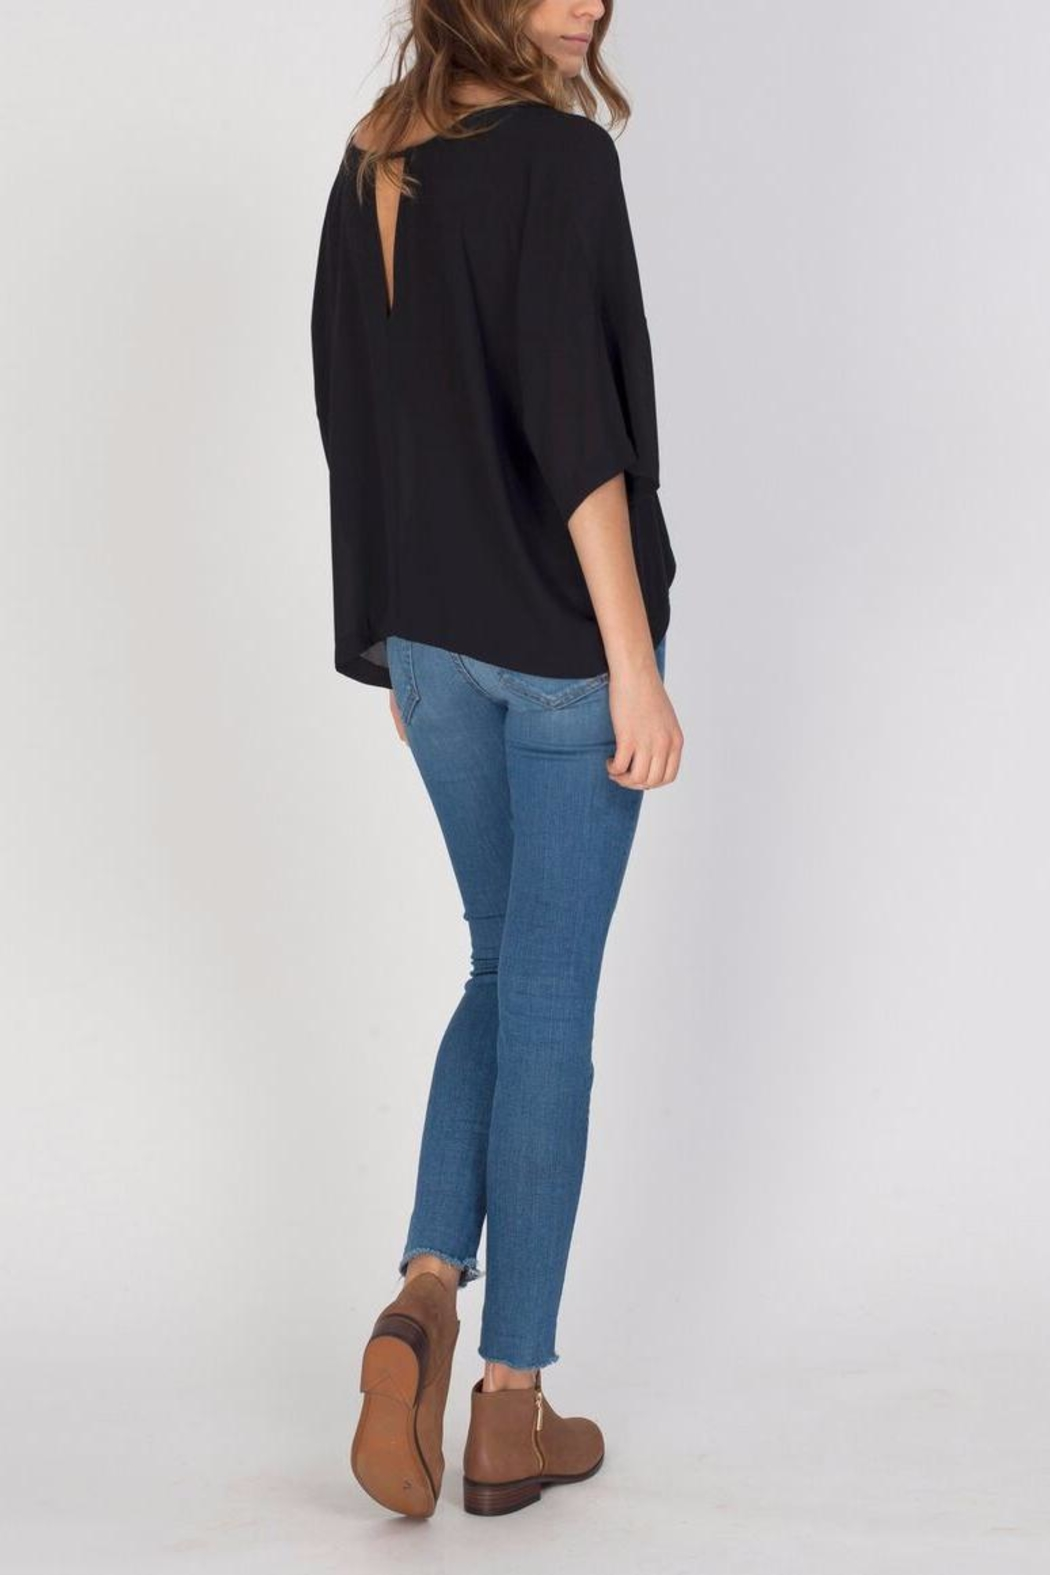 Gentle Fawn Black Andrea Top - Front Cropped Image